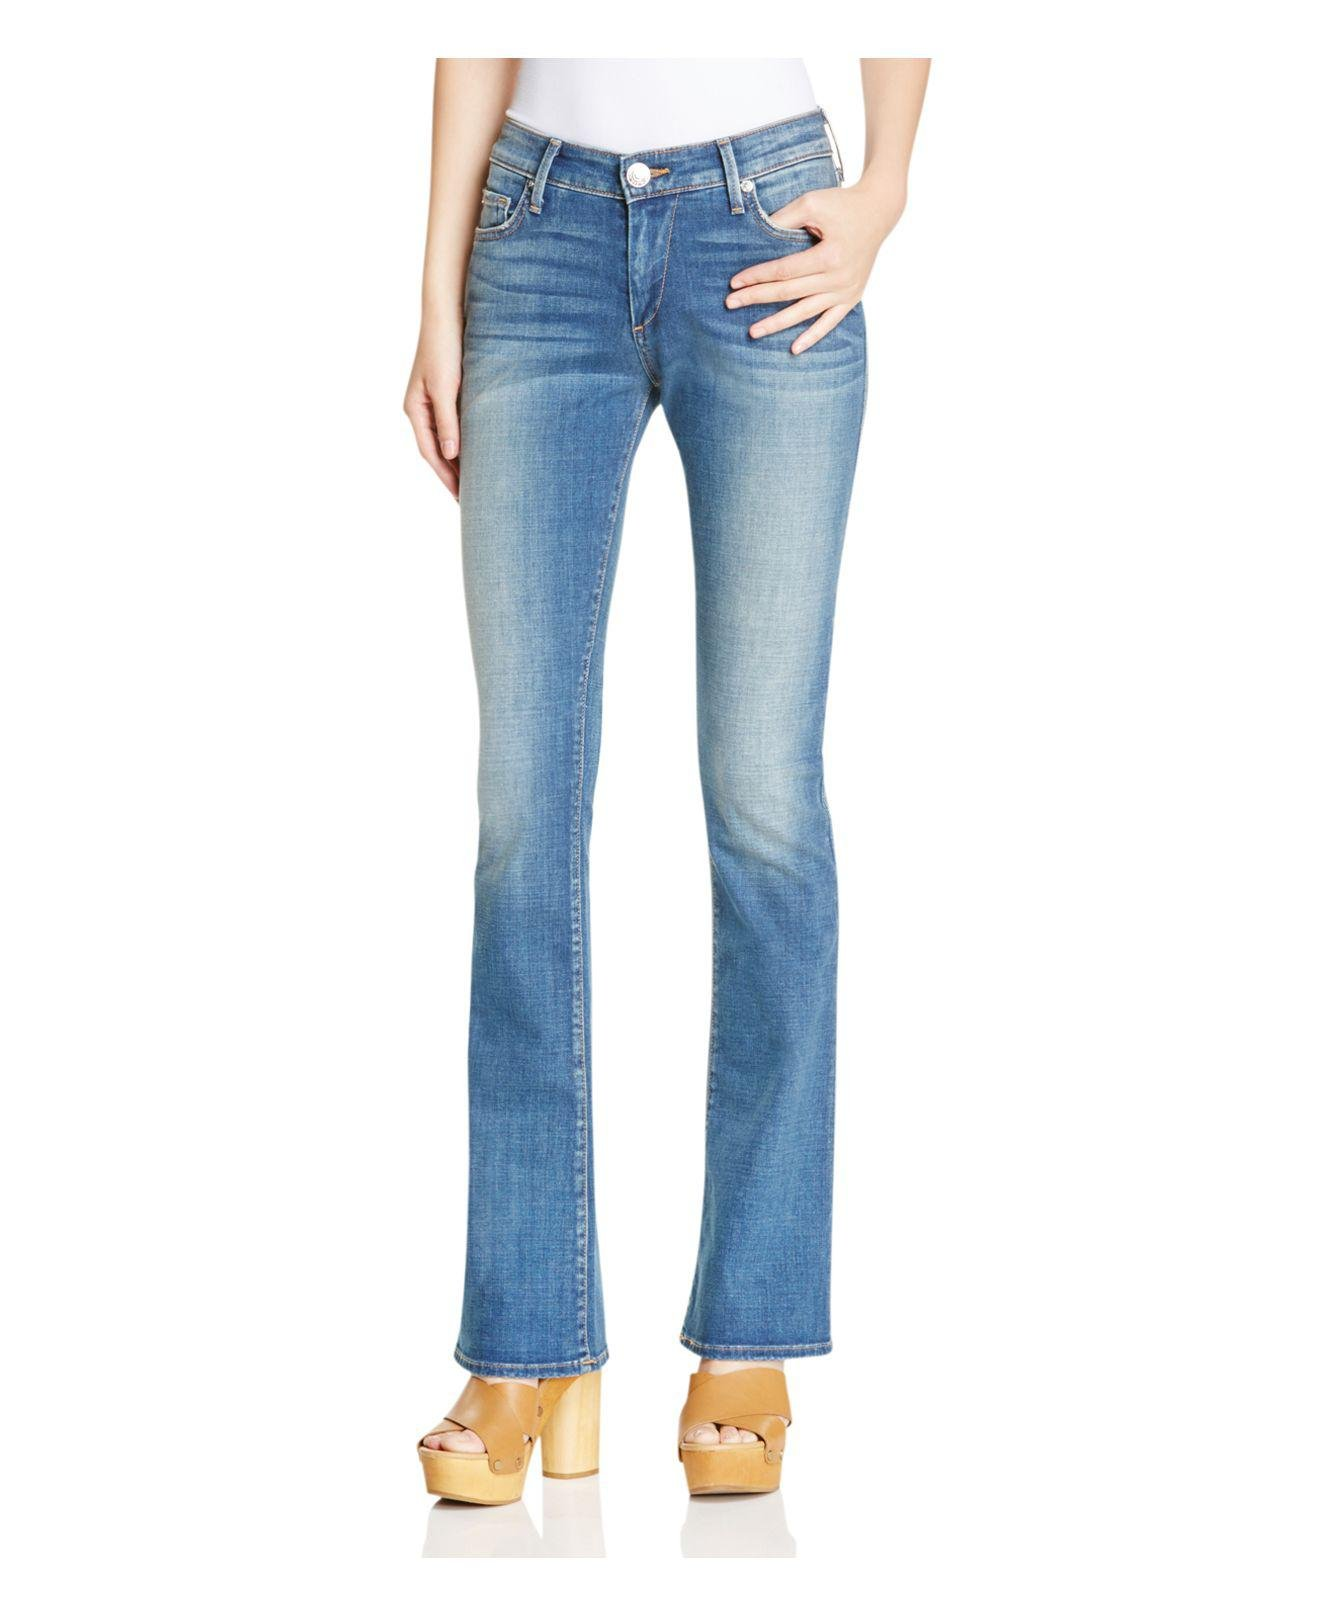 2d1dc579171 Lyst - True Religion Jennie Curvy Bootcut Jeans In Boot Rolling ...